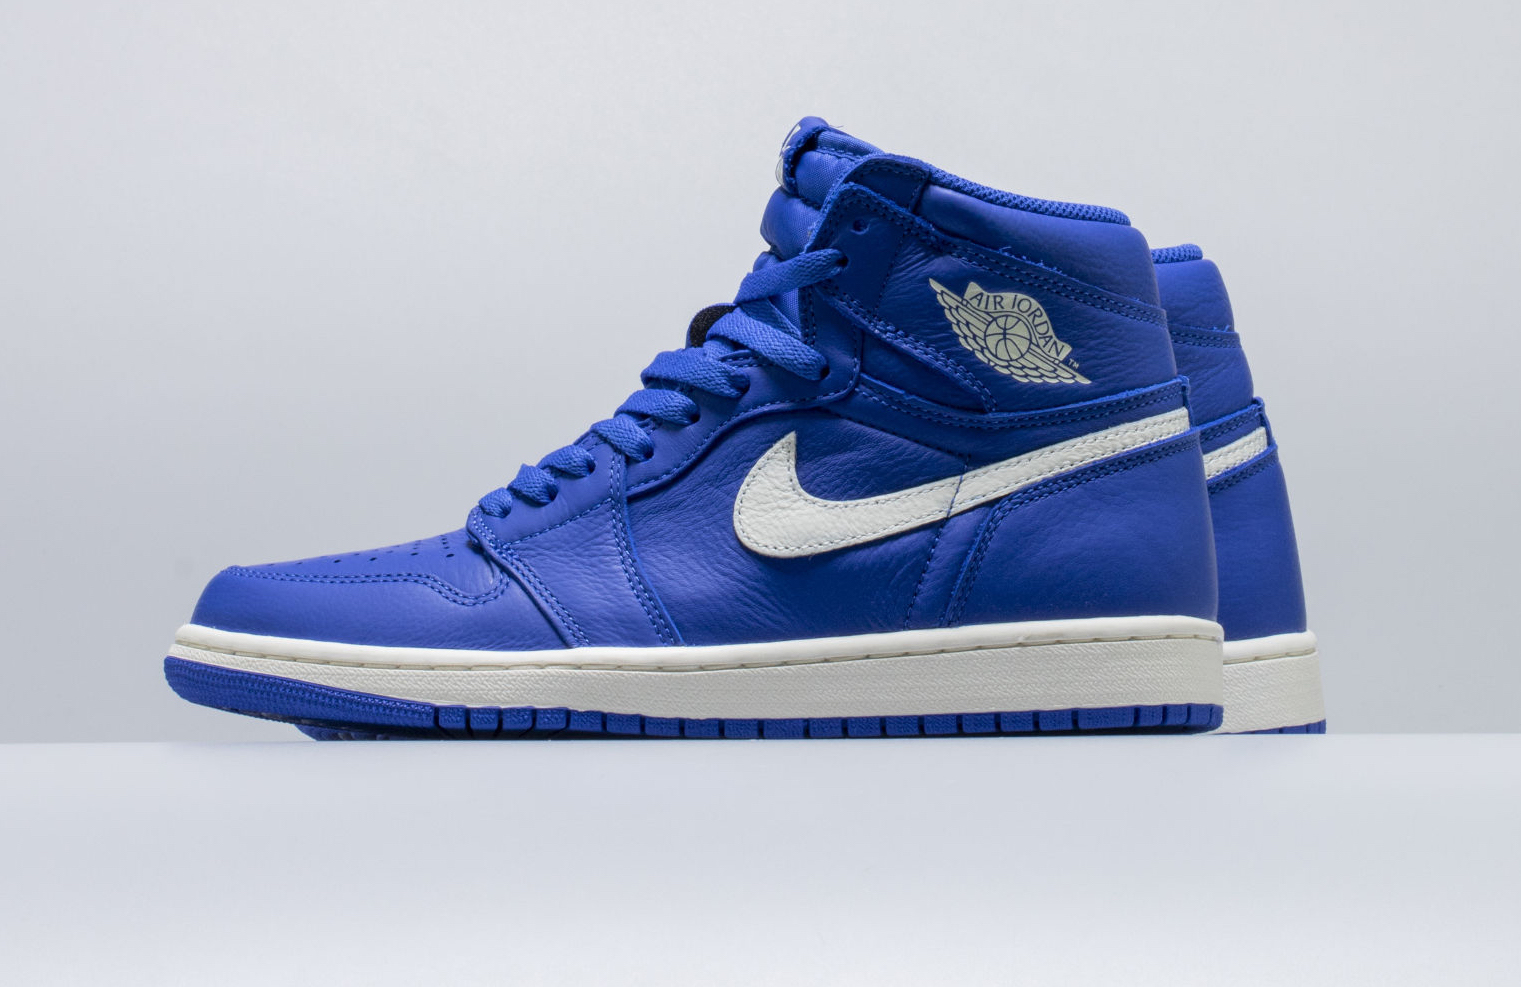 new style 556cc 68338 Are You Waiting For The Air Jordan 1 Retro High OG Hyper ...